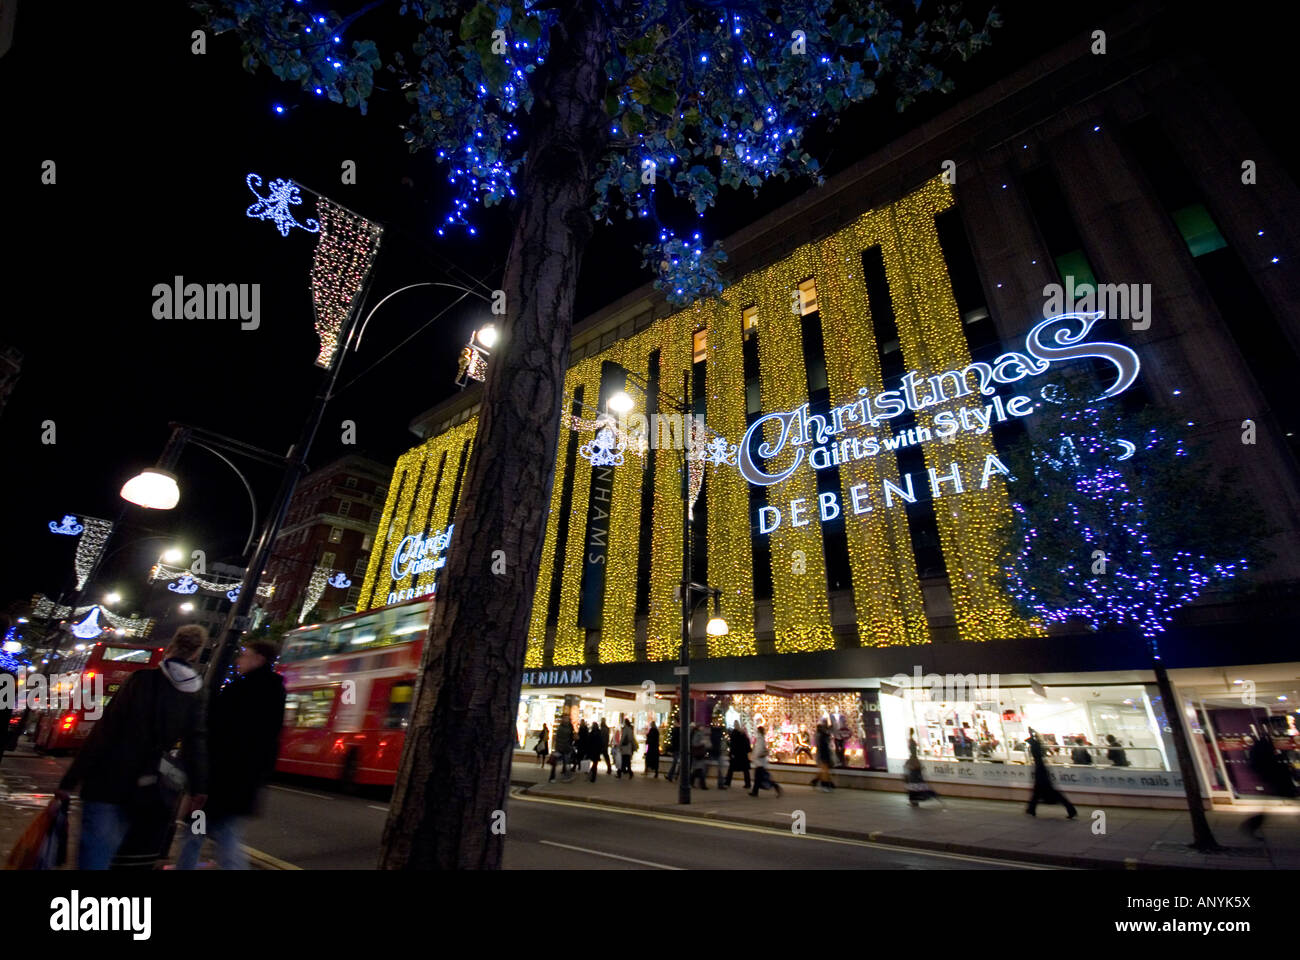 Debenhams christmas light in oxford street by night london Stock ...